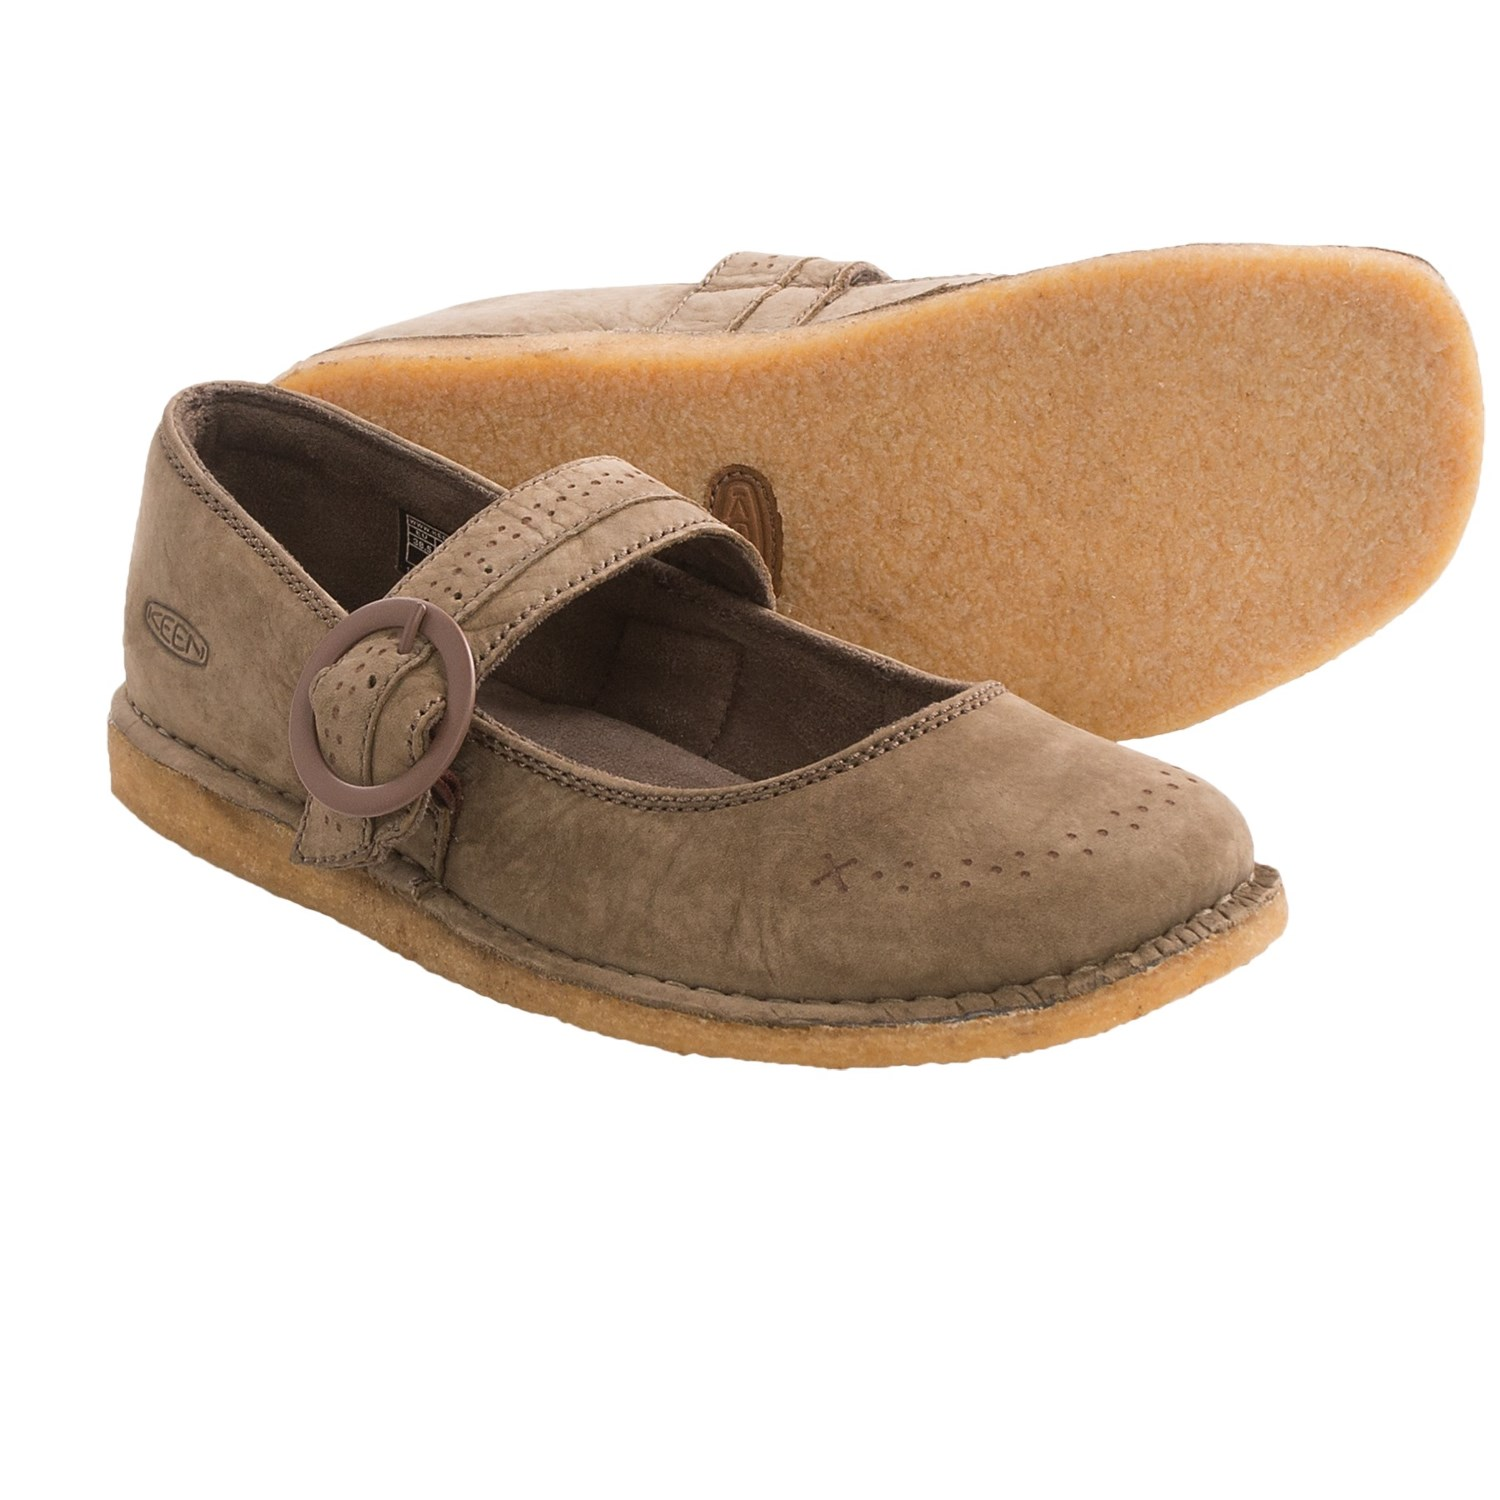 Dansko Kids Clogs